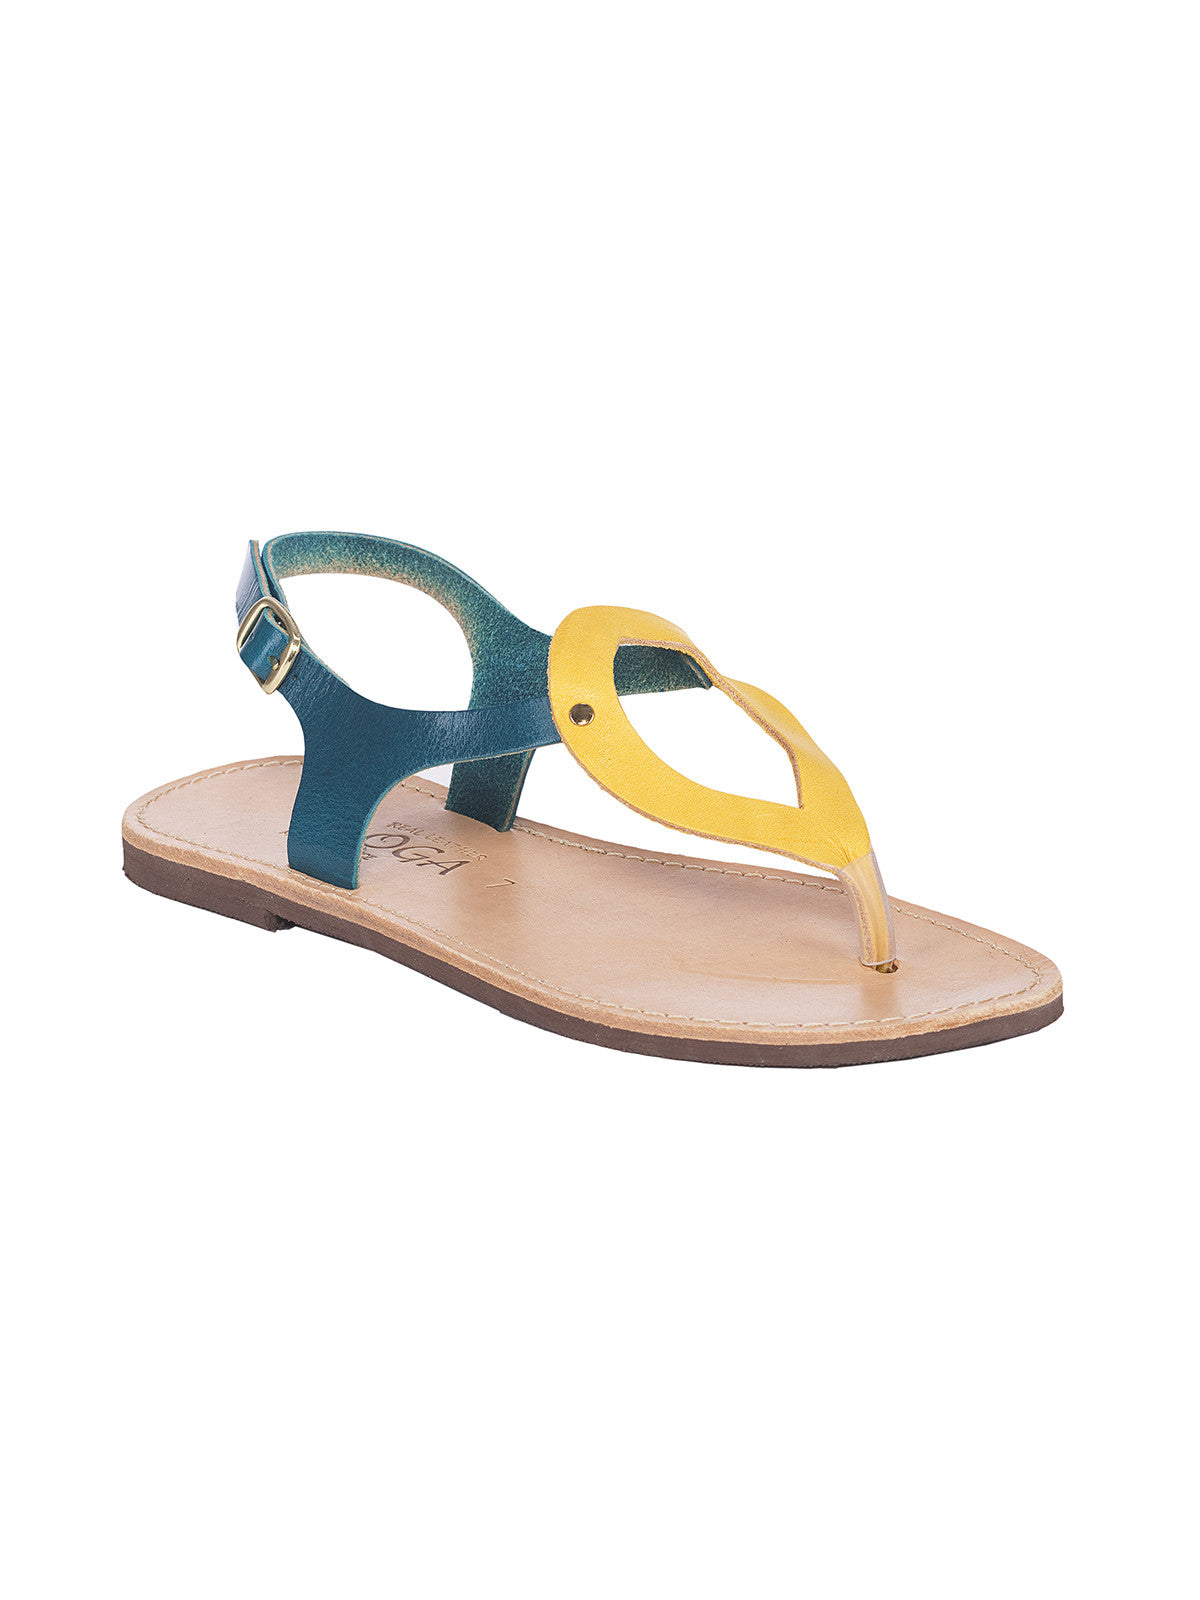 Ioanna Green/Yellow Greek Leather Sandals